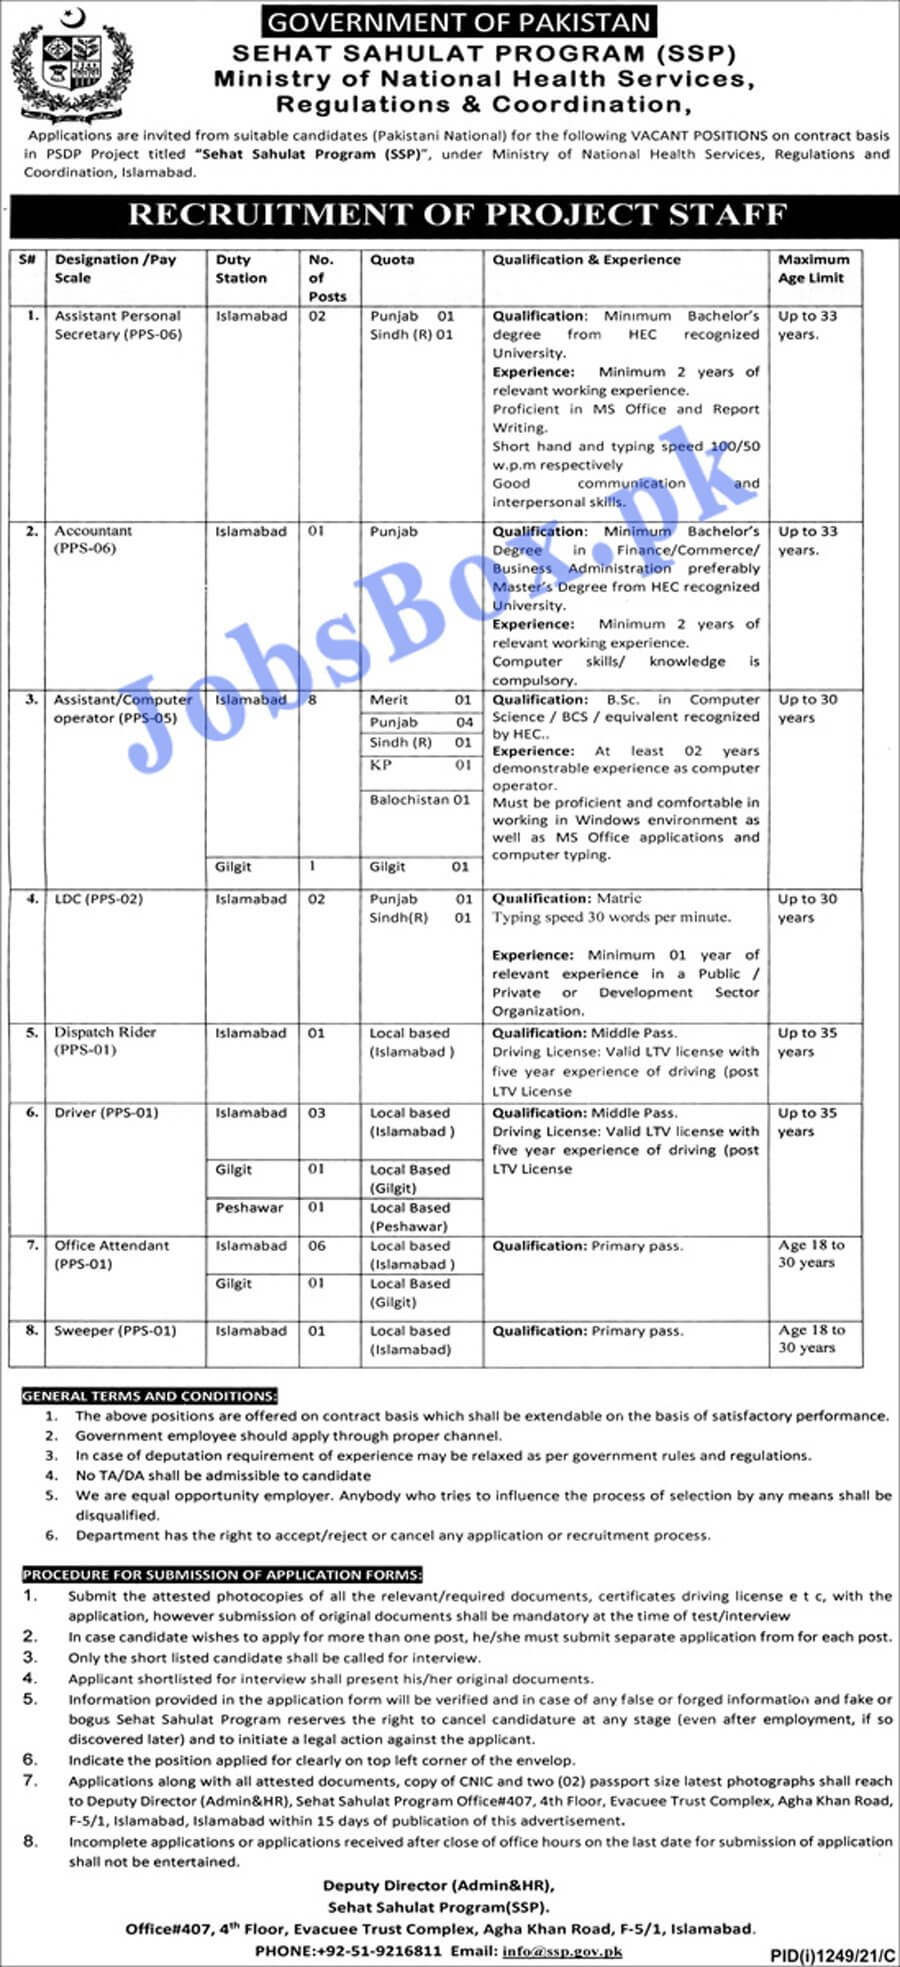 Sehat Sahulat Program SSP Jobs 2021 in Pakistan - Ministry of National Health Services Jobs 2021